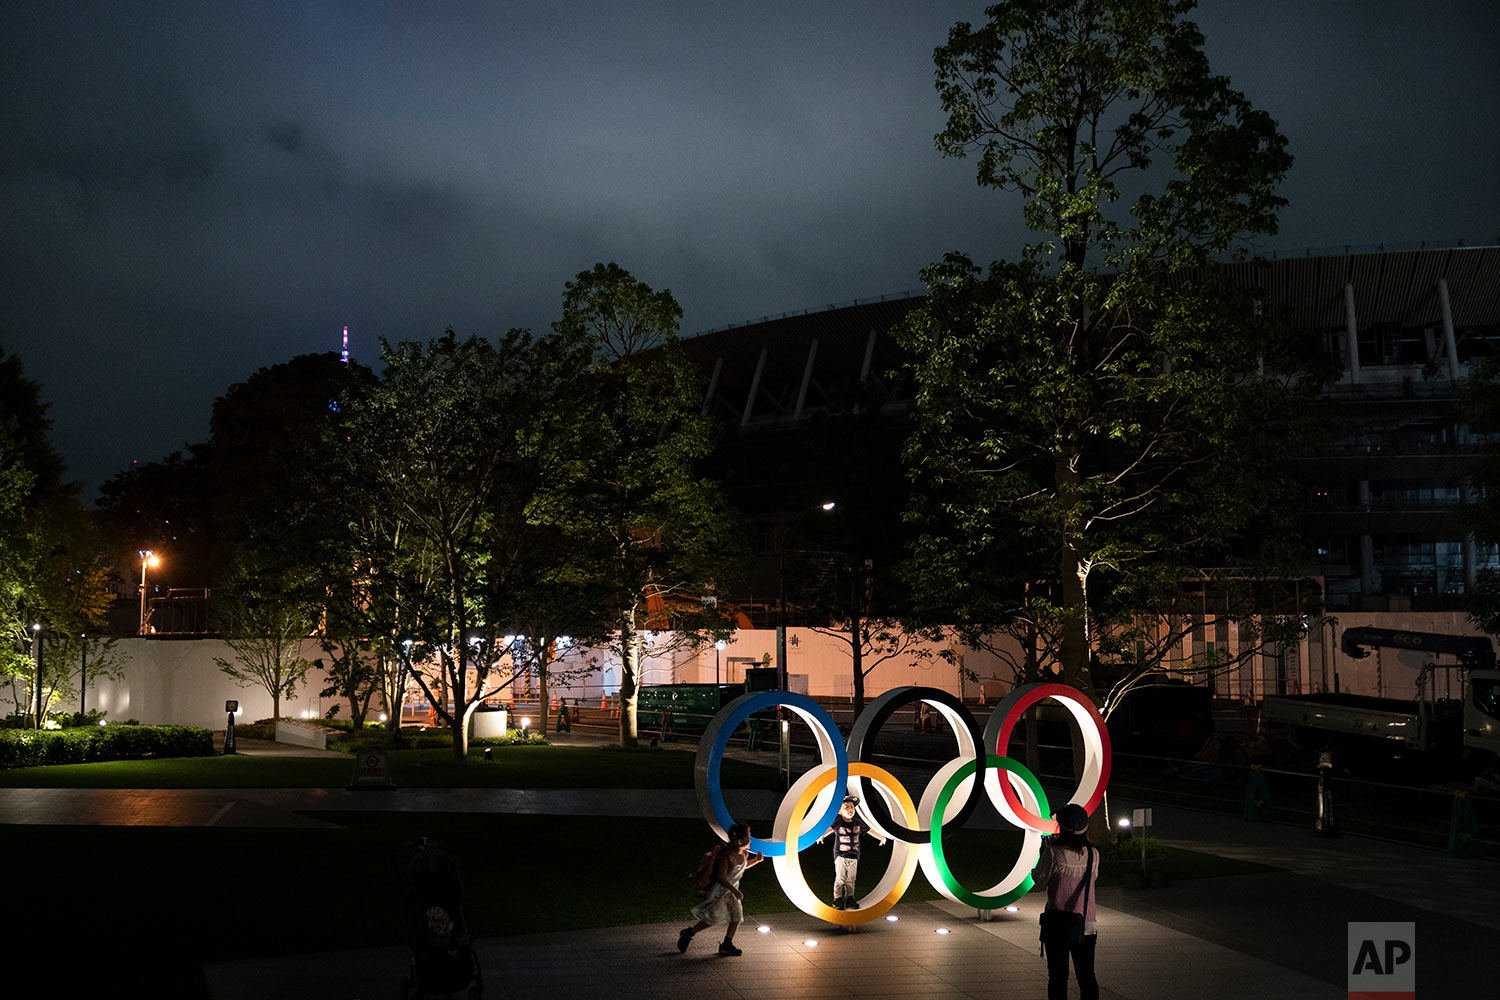 Two children pose for photos with the Olympic Rings in front of New National Stadium in Tokyo, June 23, 2019. (AP Photo/Jae C. Hong)